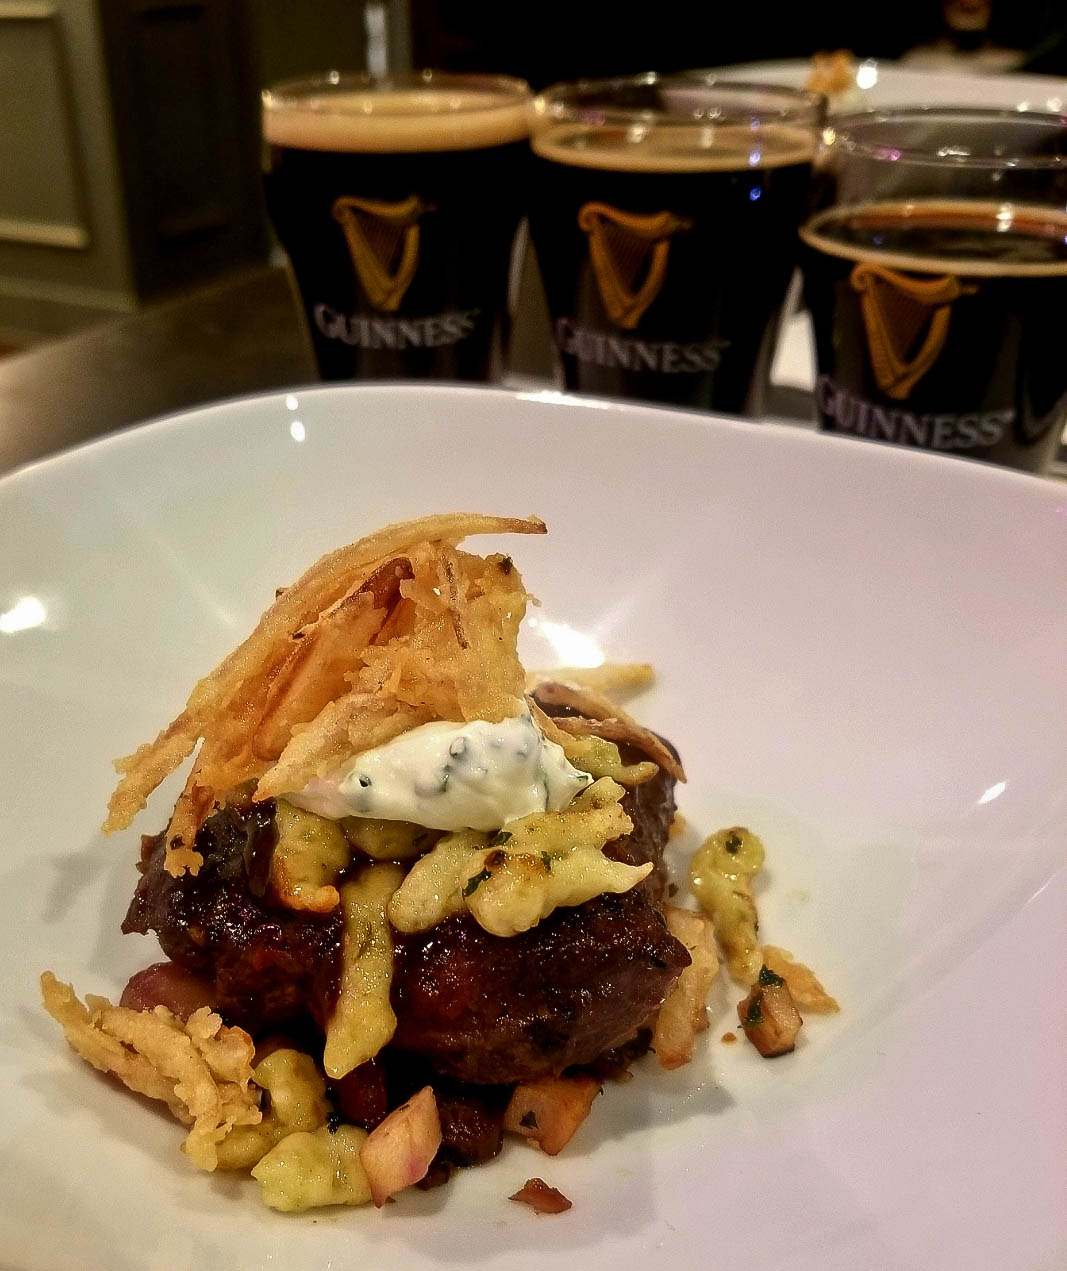 Not your typical stew. This Guinness Short Rib Stew is simmered in Guinness stout for a tender and savory texture and taste.